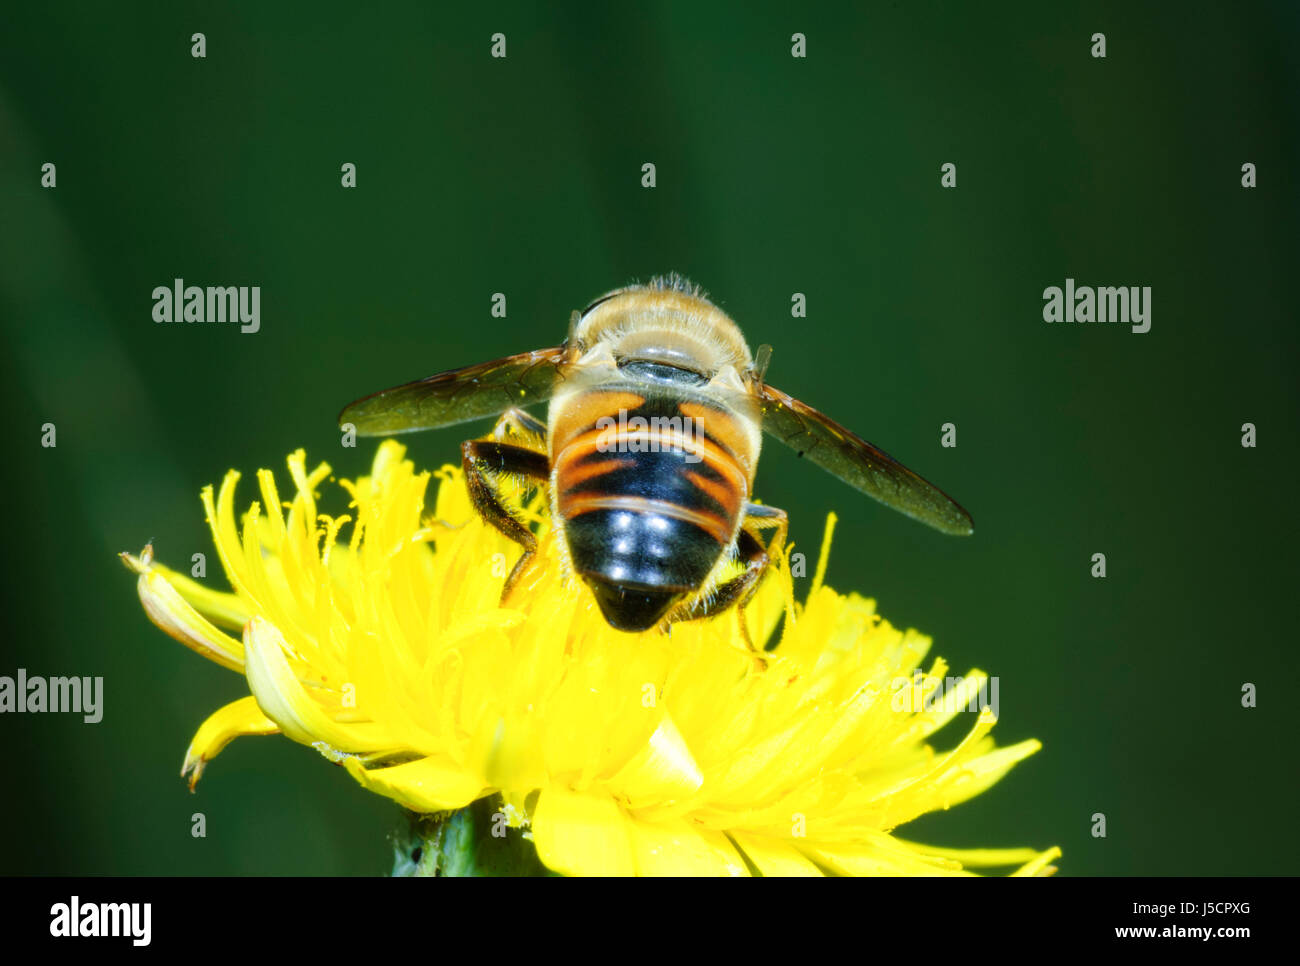 Drone Fly (Eristalis tenax), a bee mimic, seen from behind pollinating nectar of a yellow flowerhead, New South - Stock Image